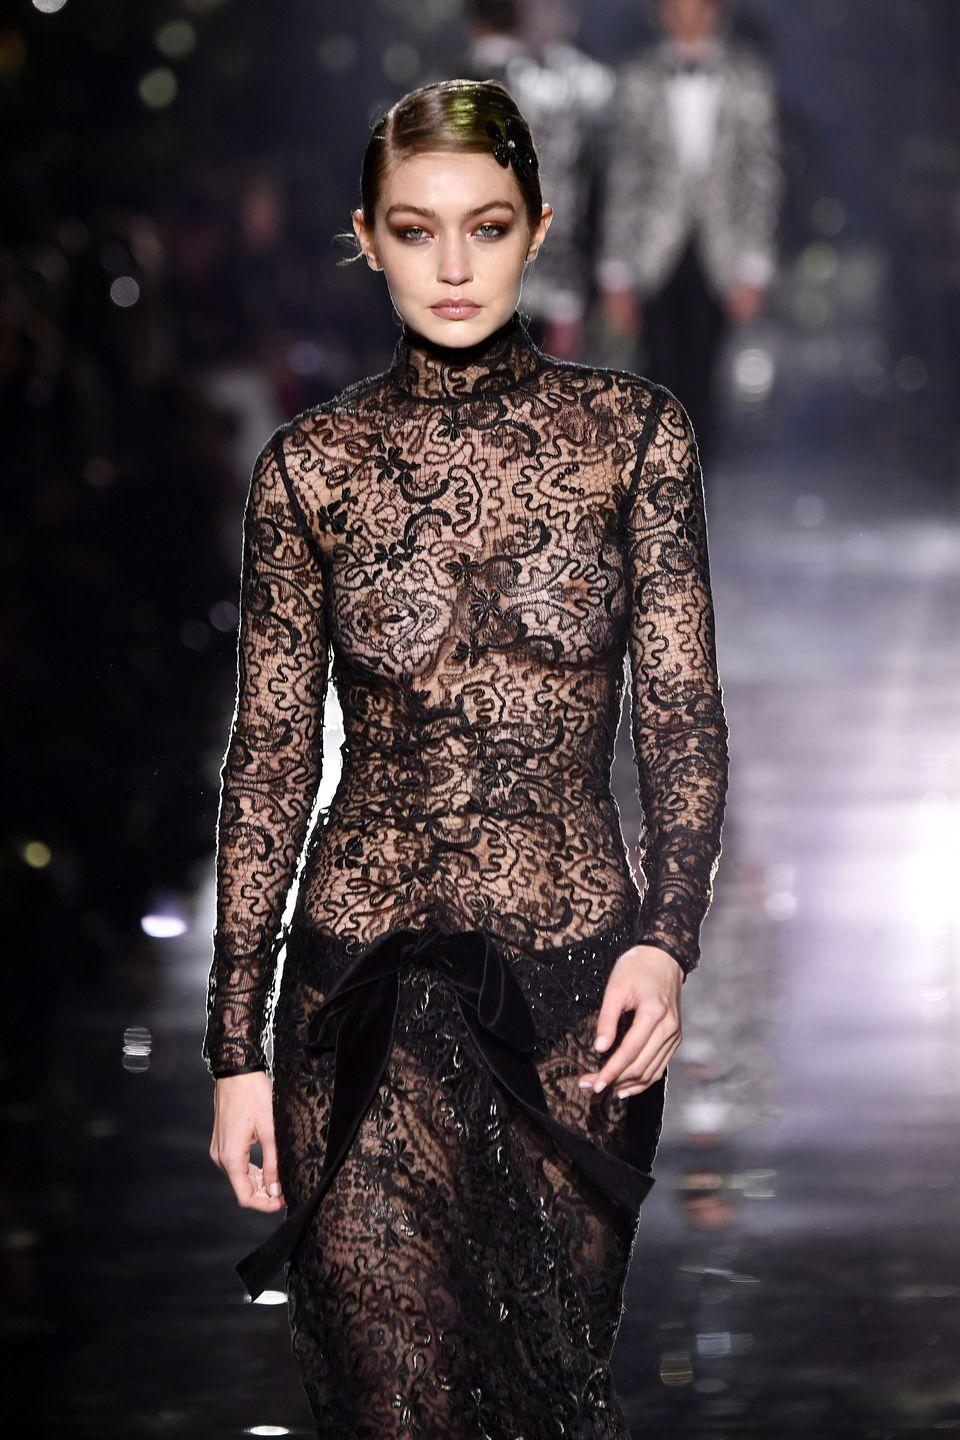 <p>A little high-fashion nipple is always the cherry on top of a good Fashion Week and this season, Gigi Hadid really supplied. The supermodel looked gorgeous and confident in an elegant lace gown at the Tom Ford show in LA. </p>